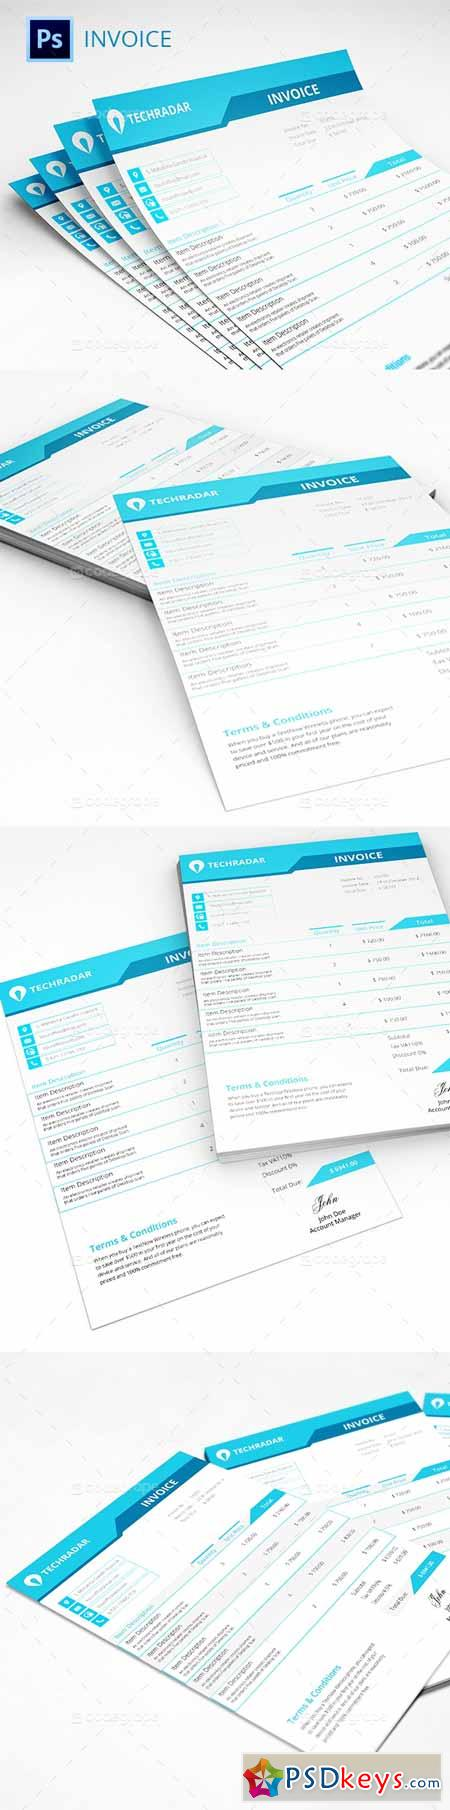 invoice template 5364 » free download photoshop vector stock image, Simple invoice